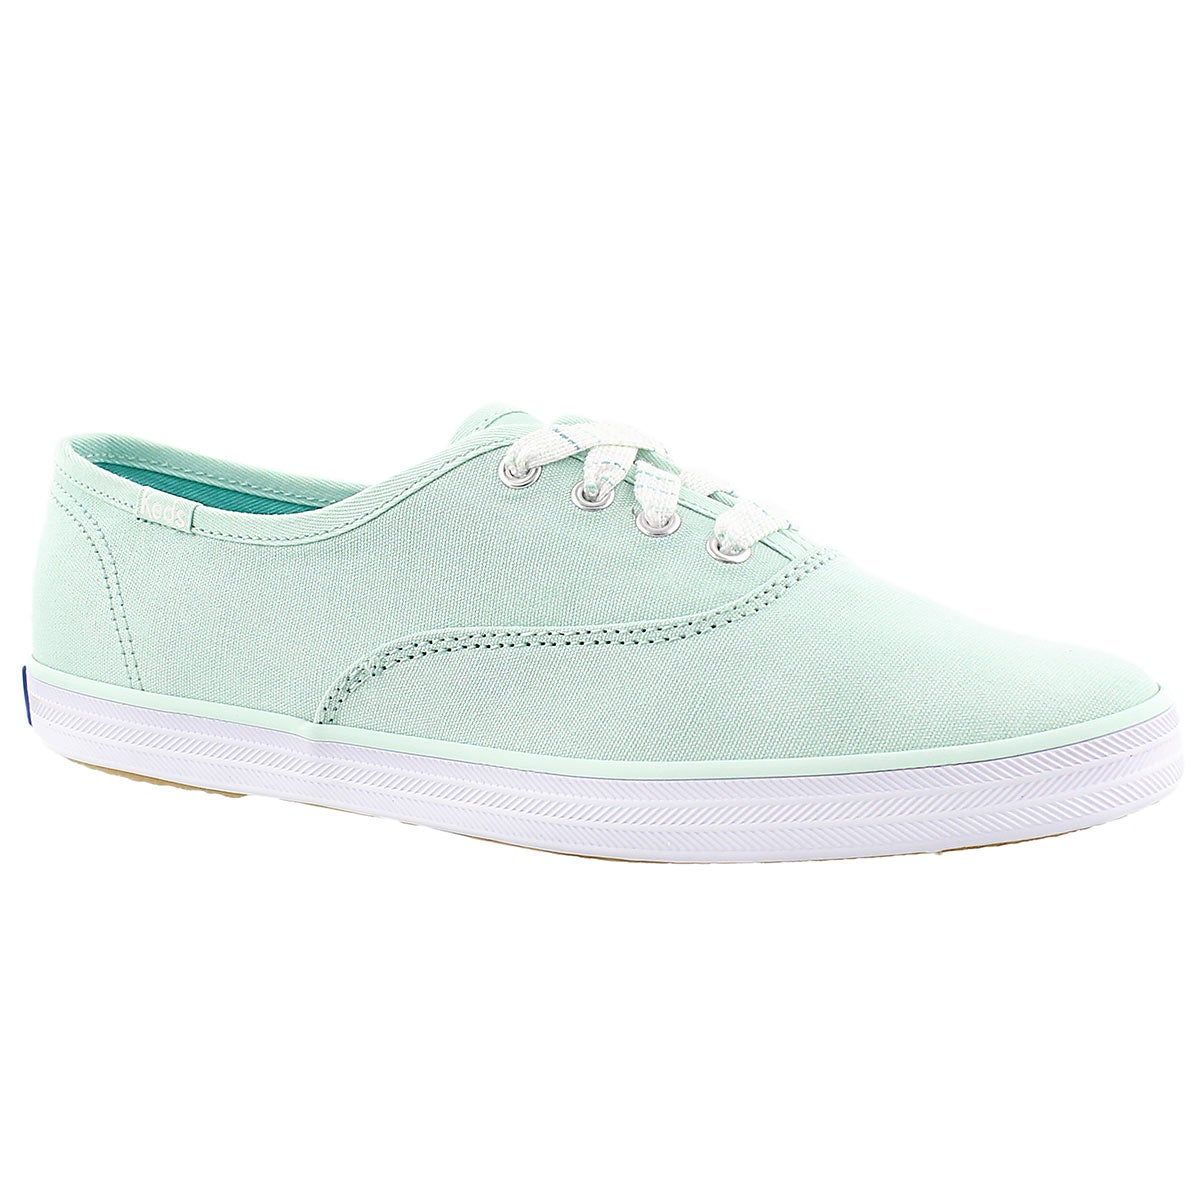 Women's CHAMPION brook green canvas sneakers